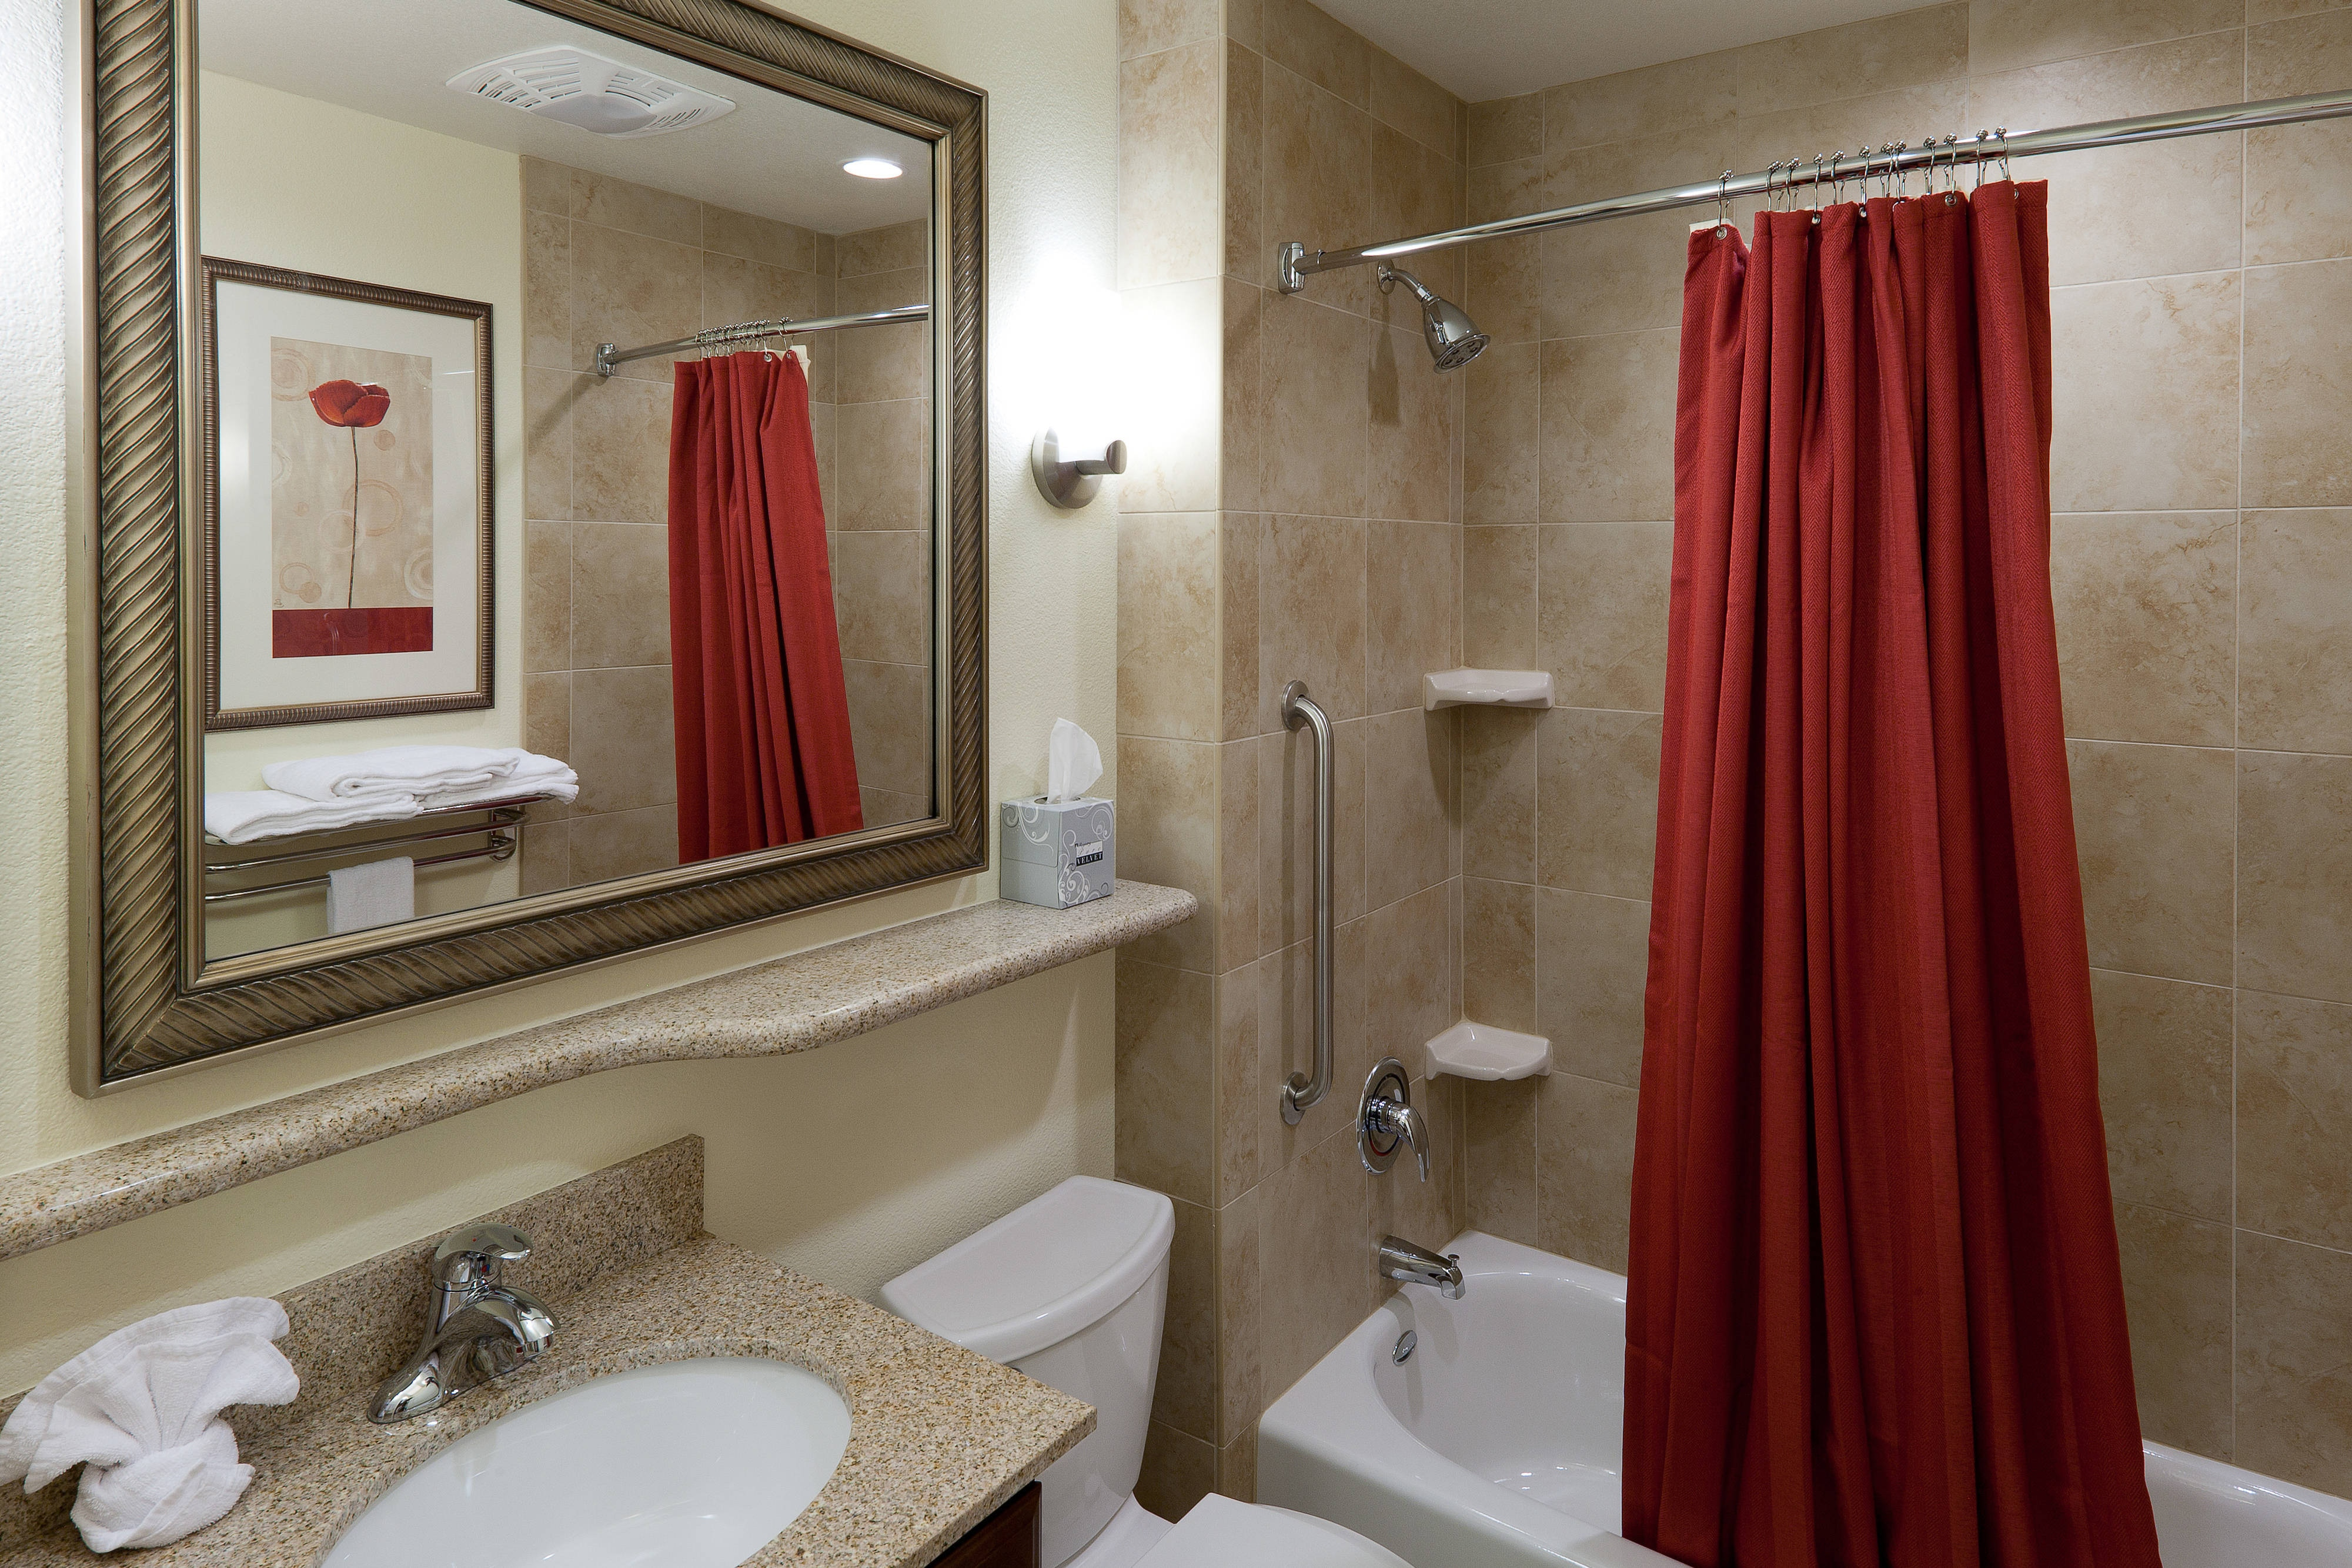 Guest Bathroom - Tucson AZ hotels